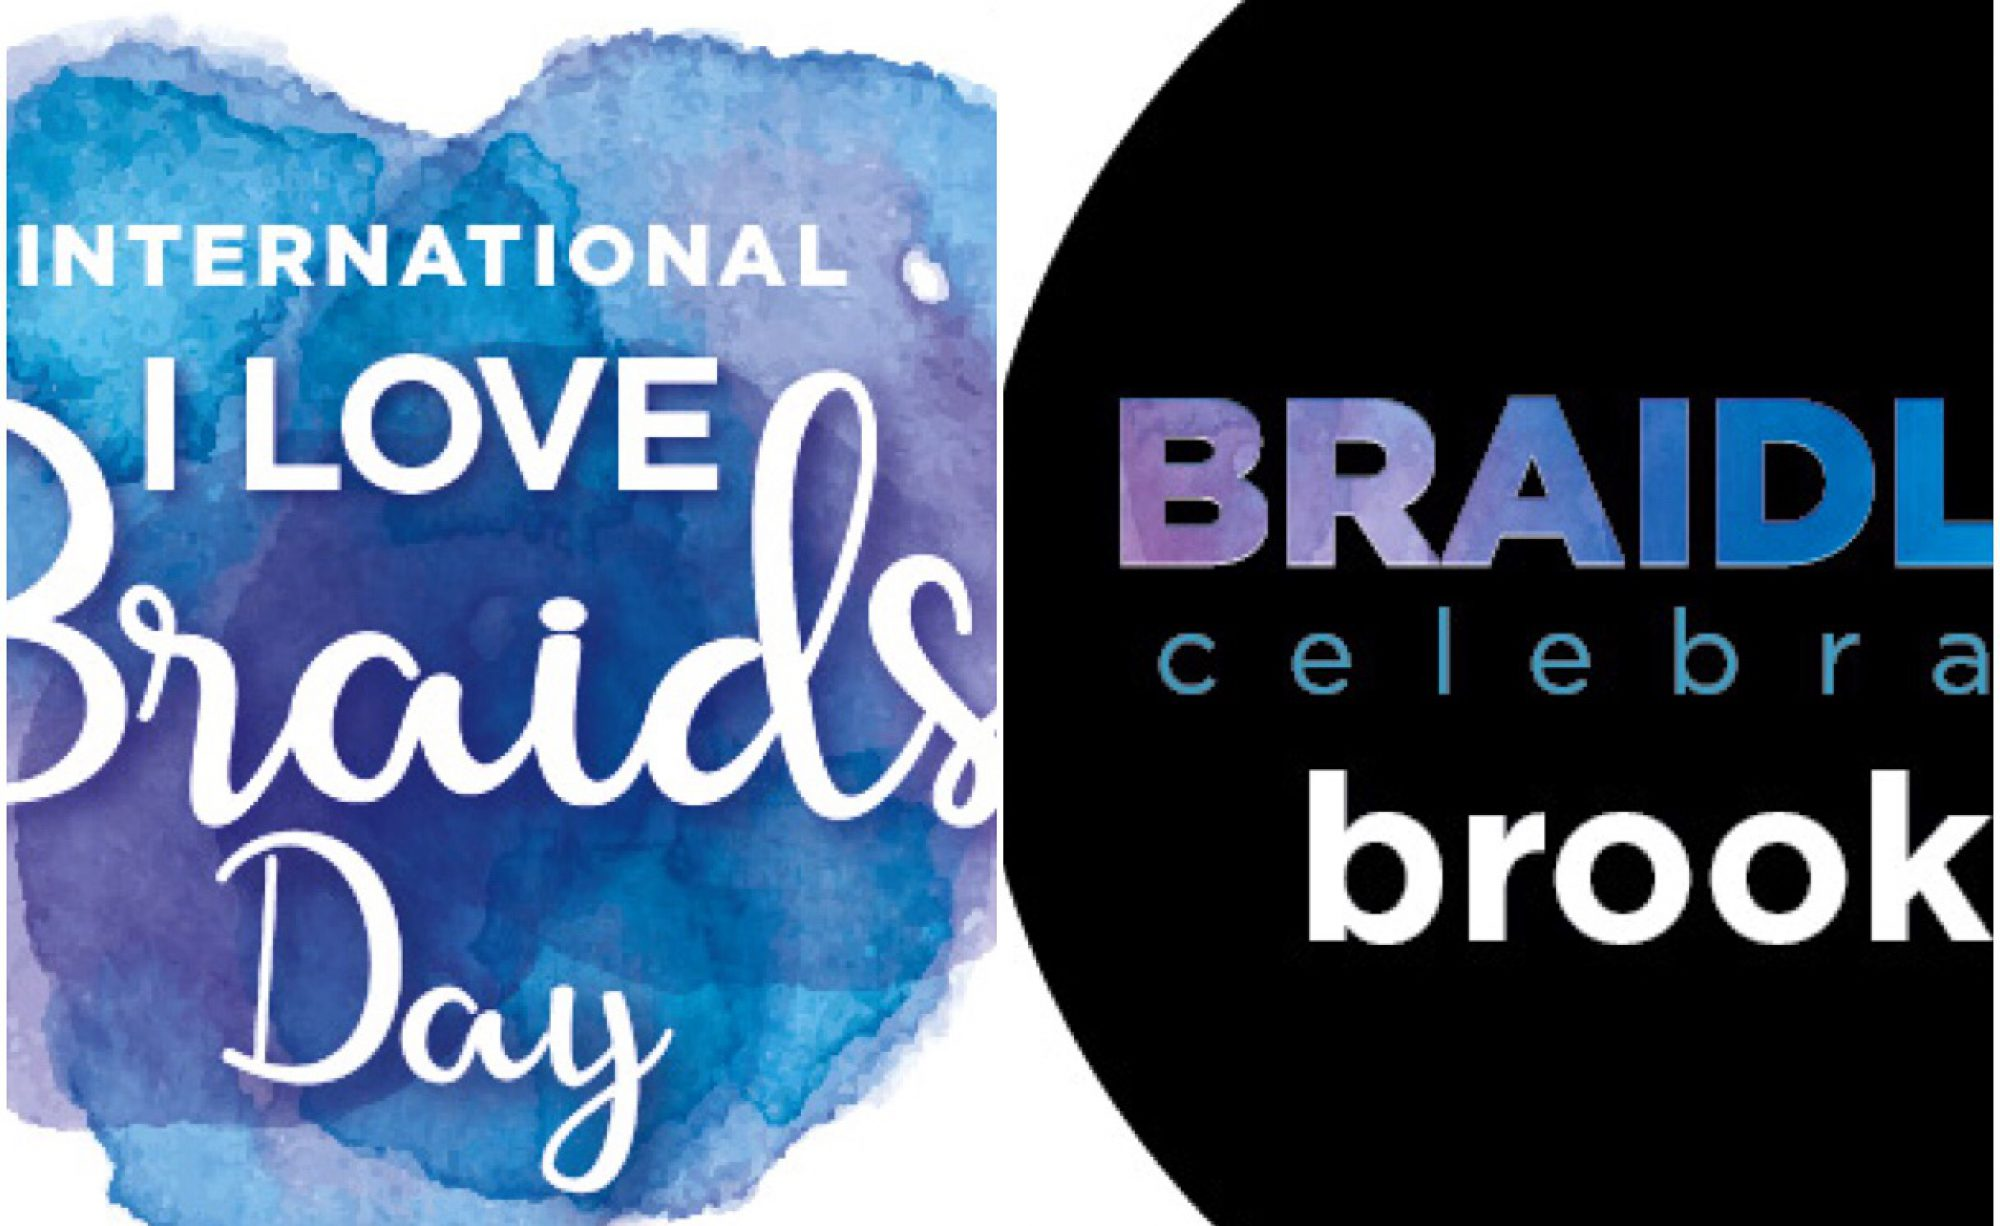 International I Love Braids Day....celebrate. honor. culture. beauty